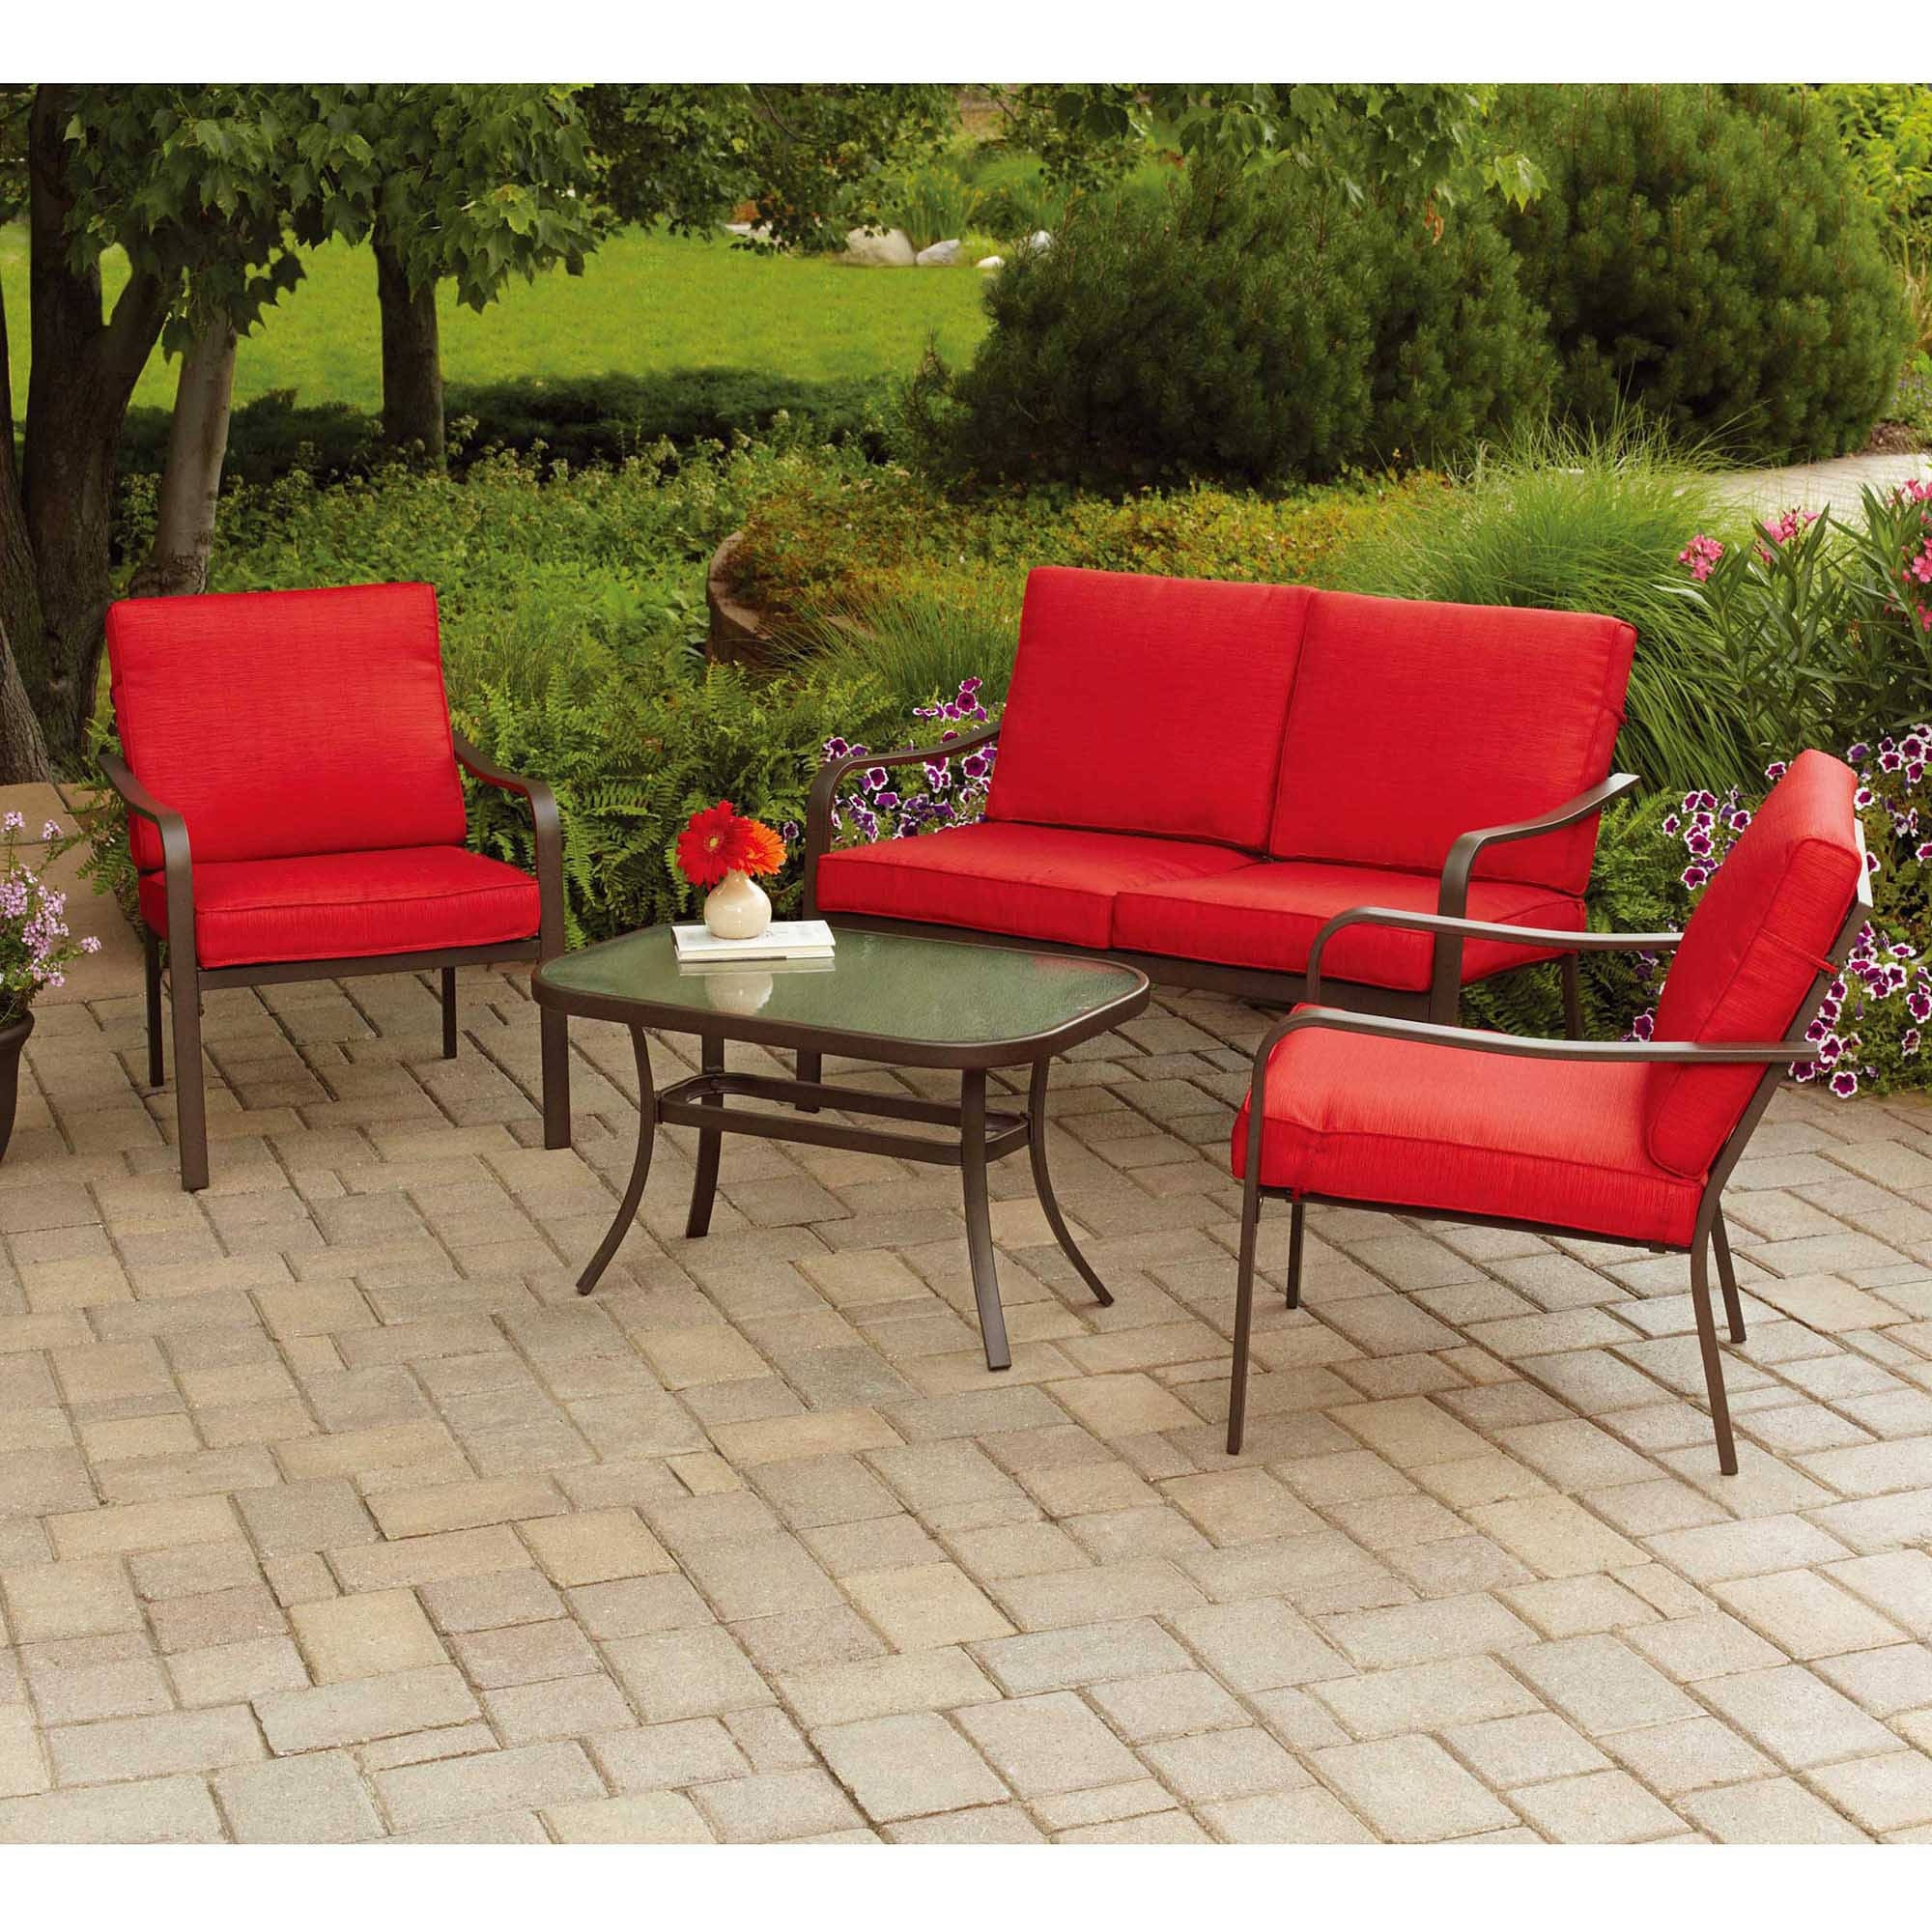 Most Up To Date Patio Conversation Sets With Cushions With Details About Mainstays Stanton Cushioned 4 Piece Patio Conversation Set,  Seats  (View 9 of 20)